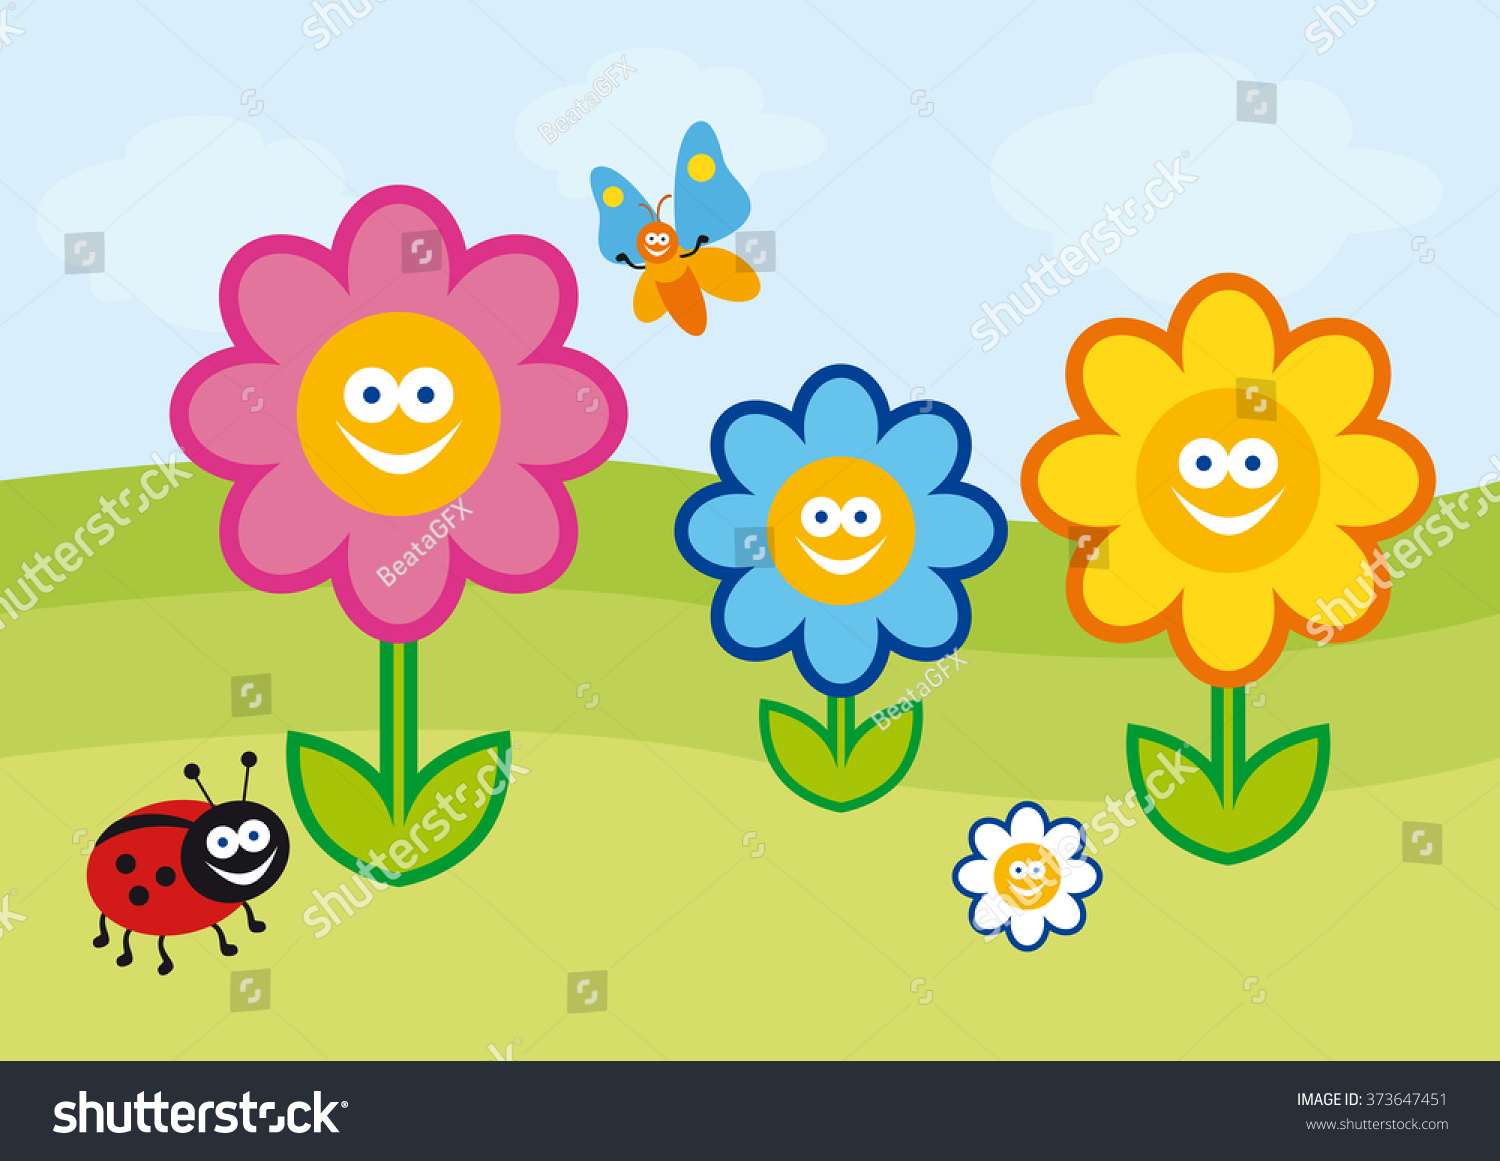 Funny spring illustration crazy colorful flowers stock illustration crazy colorful flowers childrens summer colorful drawing beautiful playful illustration izmirmasajfo Gallery